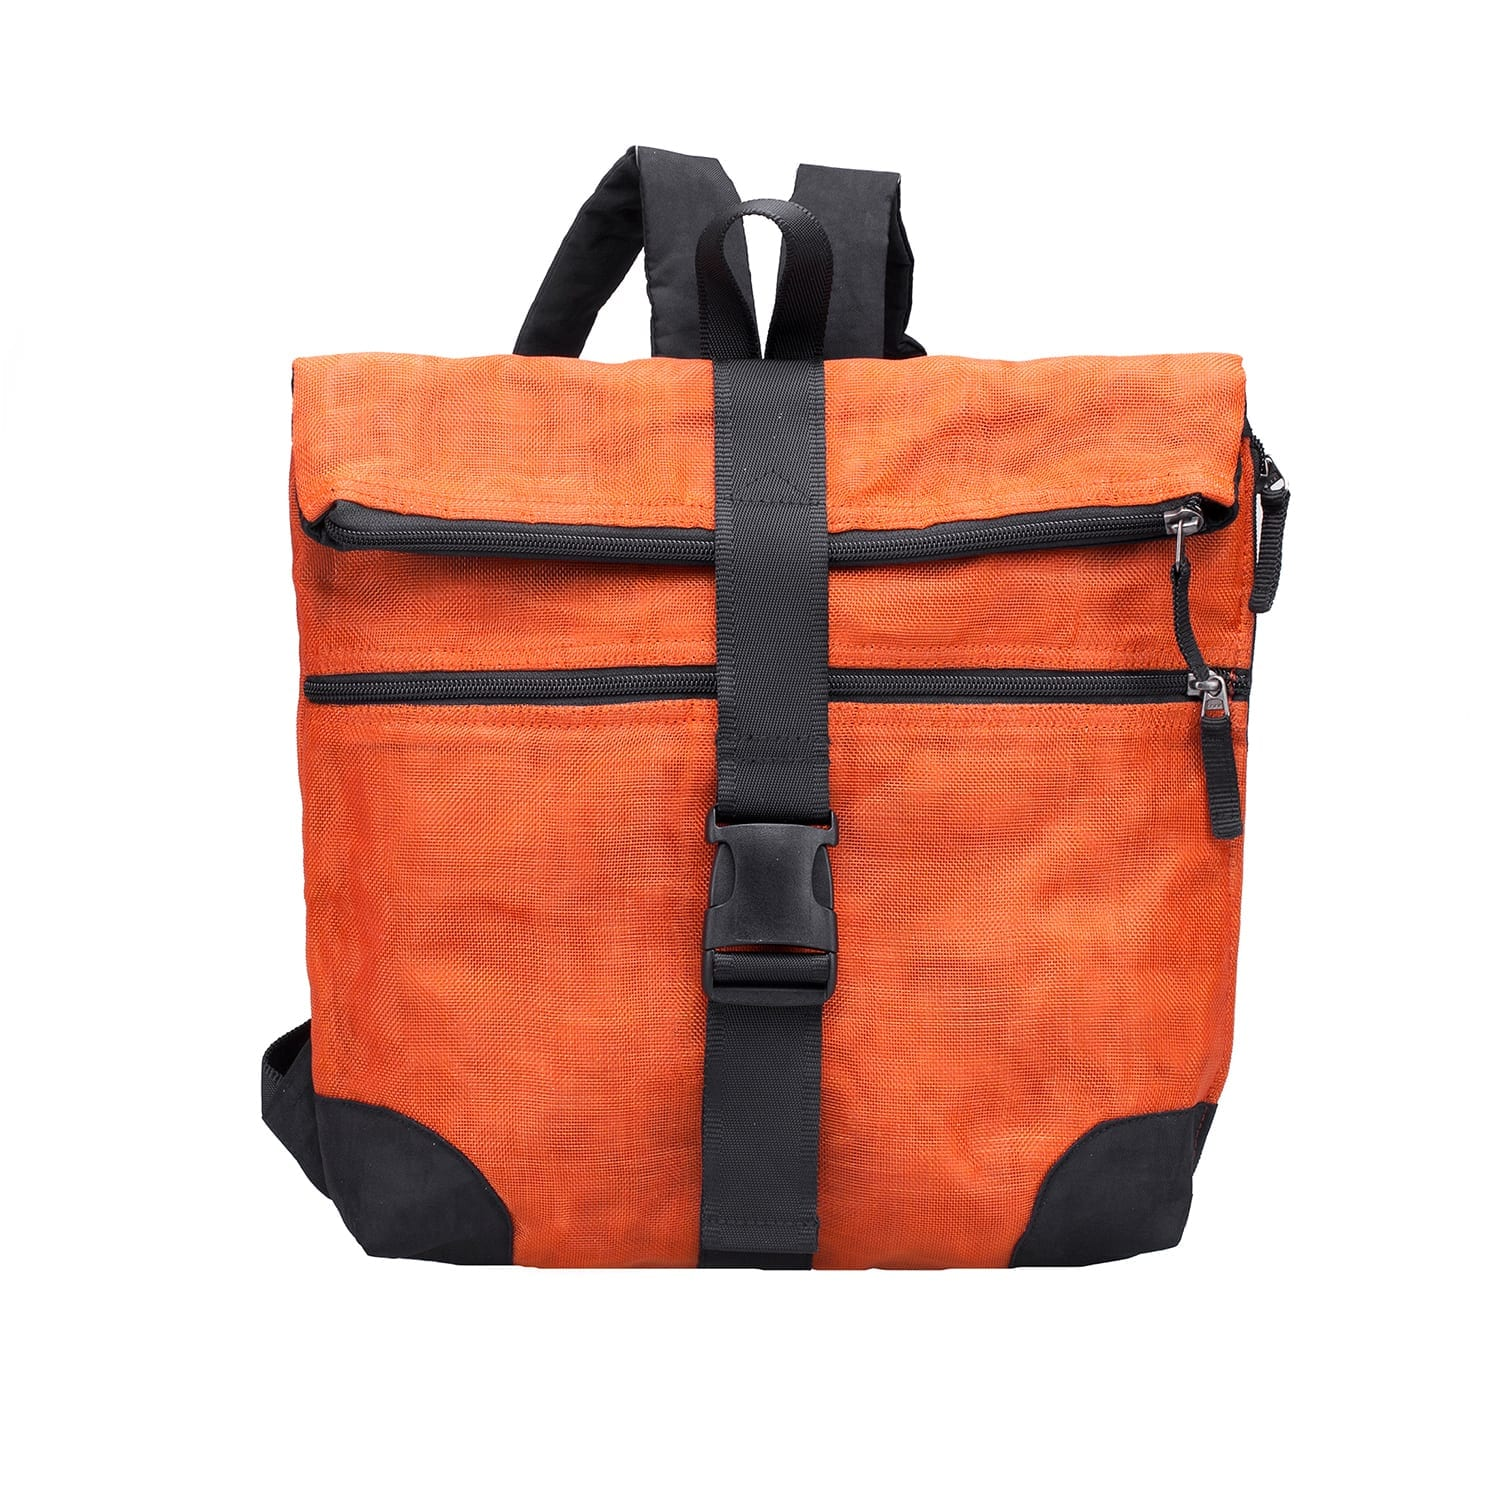 Le Sac à dos techno éthique - Orange